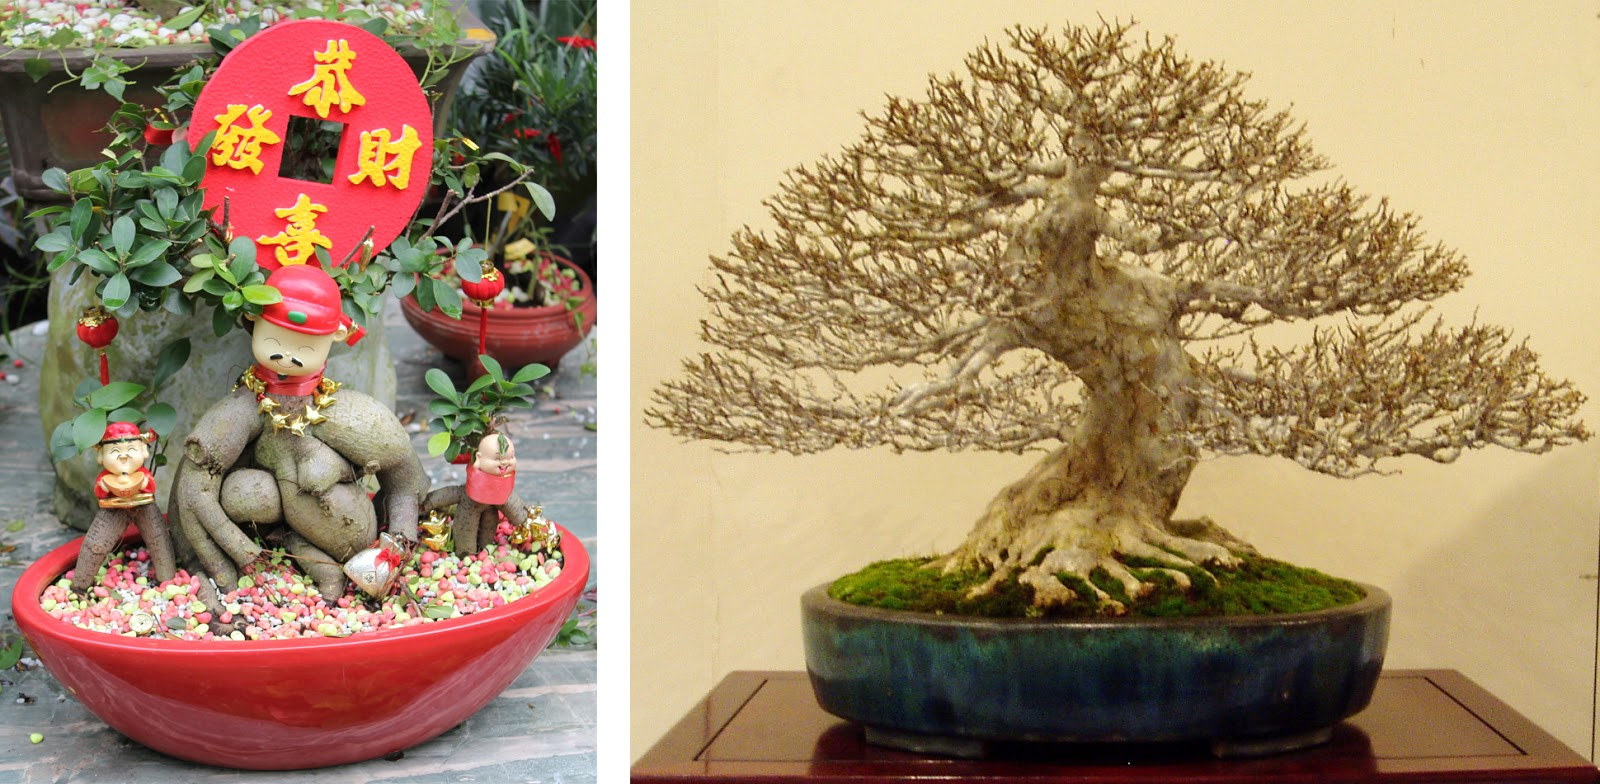 Kigawa39s Bonsai Blog May 2015